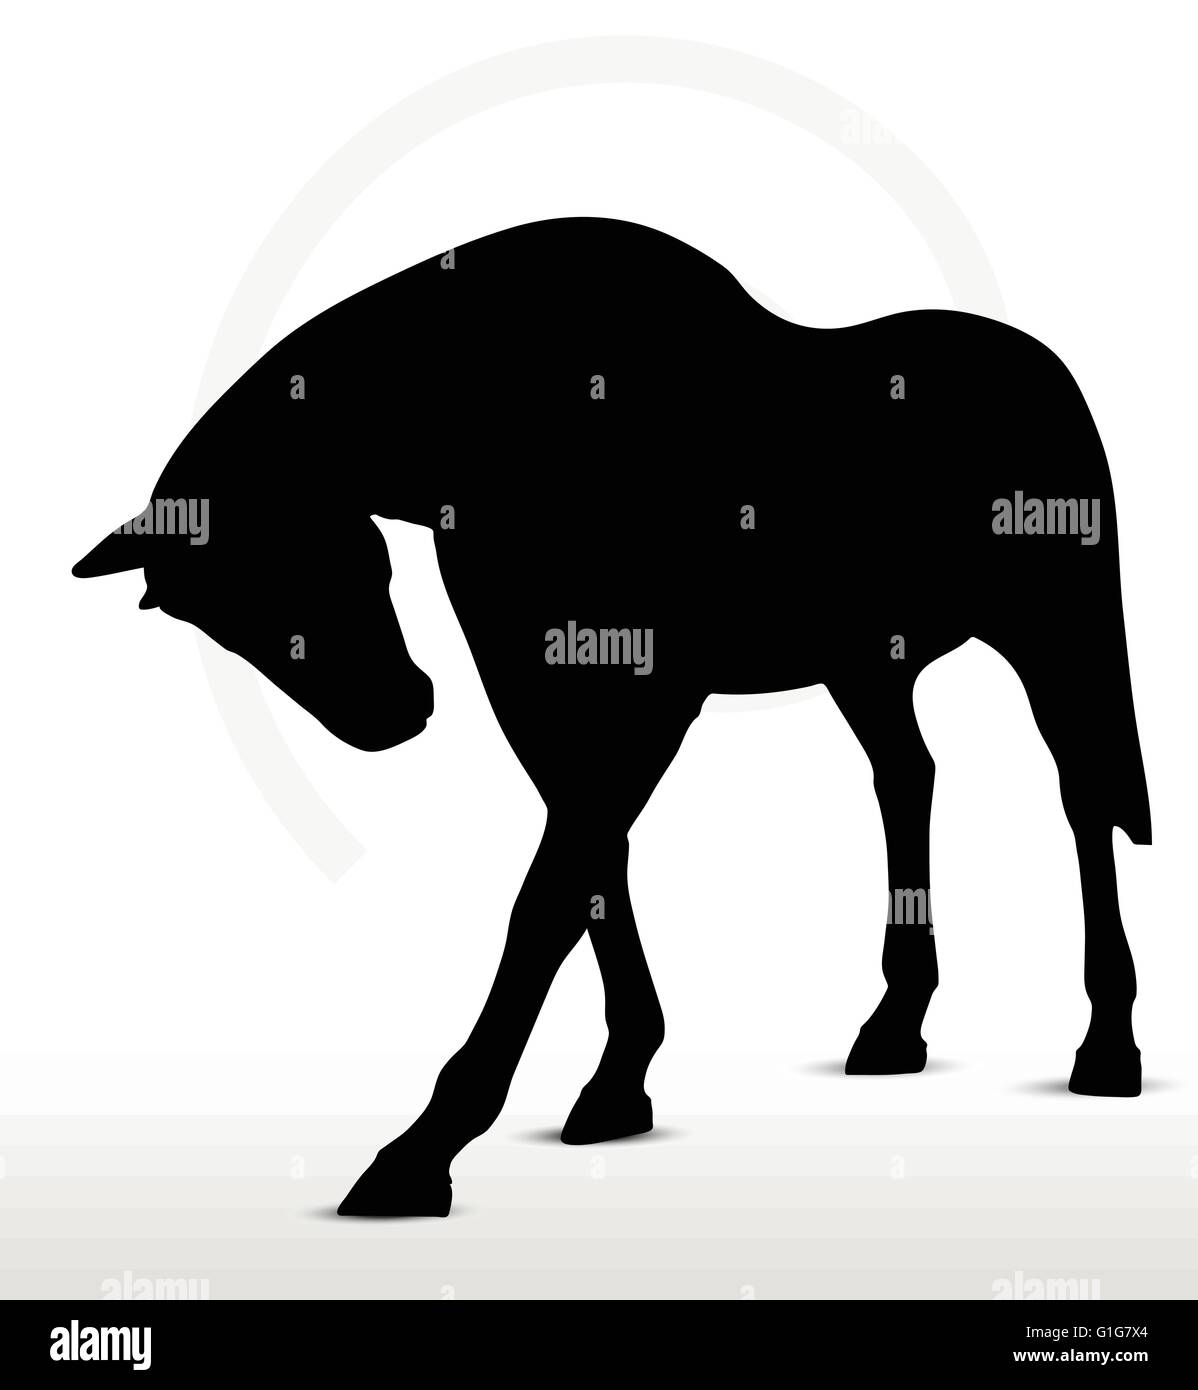 Eps 10 Vector Horse Silhouette In Walking Head Down Position Stock Vector Image Art Alamy